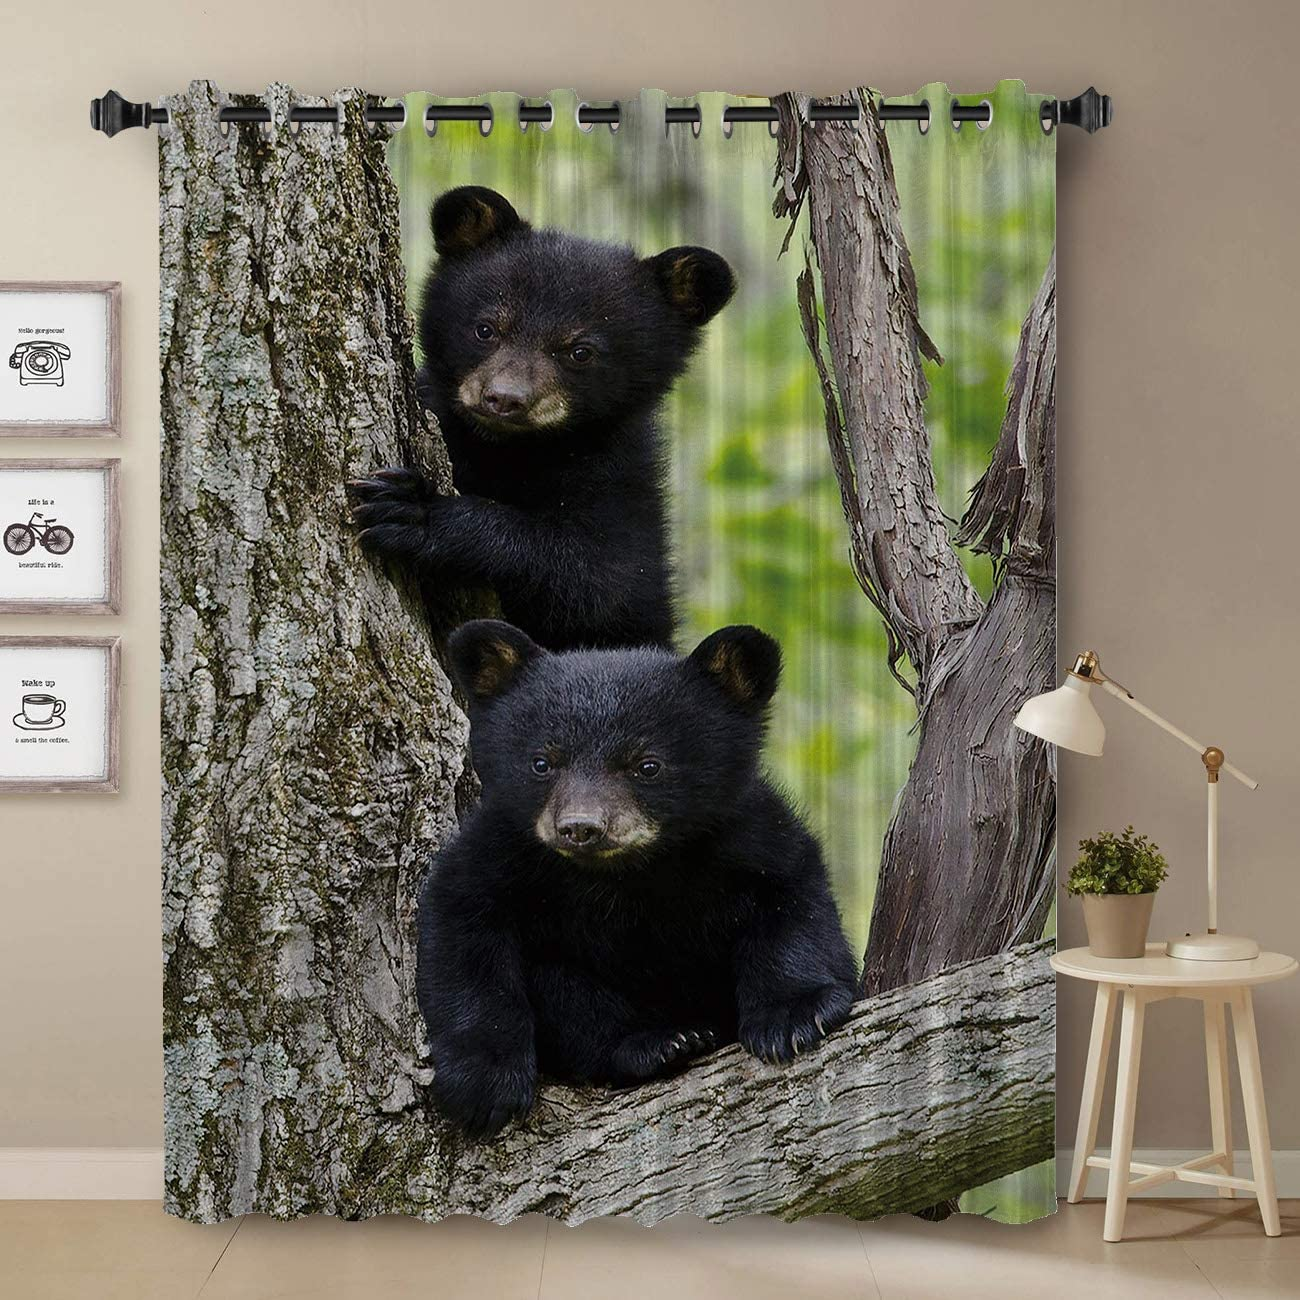 Black Bear Curtain, Cubs Family Theme Rustic Wildlife Design Curtain for Bedroom, Room Darkening Blackout Curtain for Living Room Thermal Insulated with Grommet Window Curtain, 52 by 84 Inch